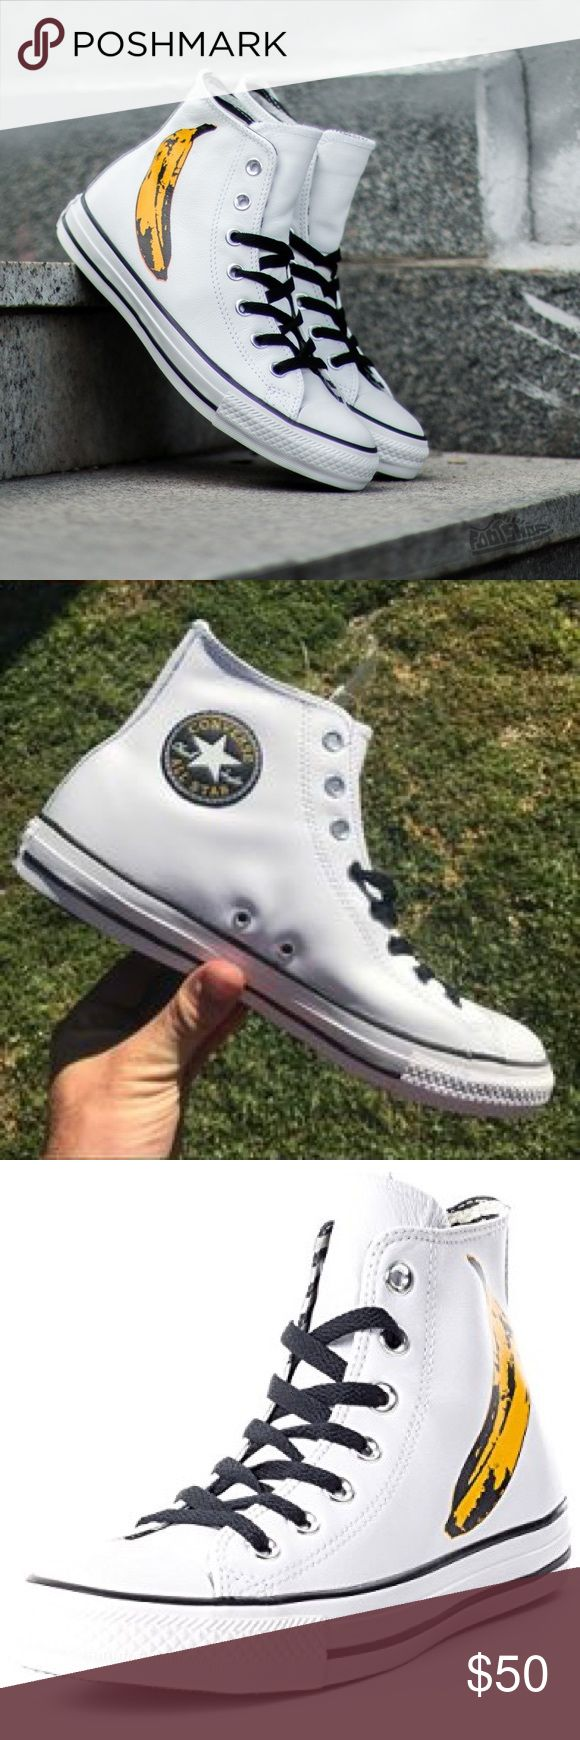 Converse Mens size 10 Andy Warhol shoes leather Brand new without box. Men's leather Andy Warhol converse. Converse Shoes Sneakers